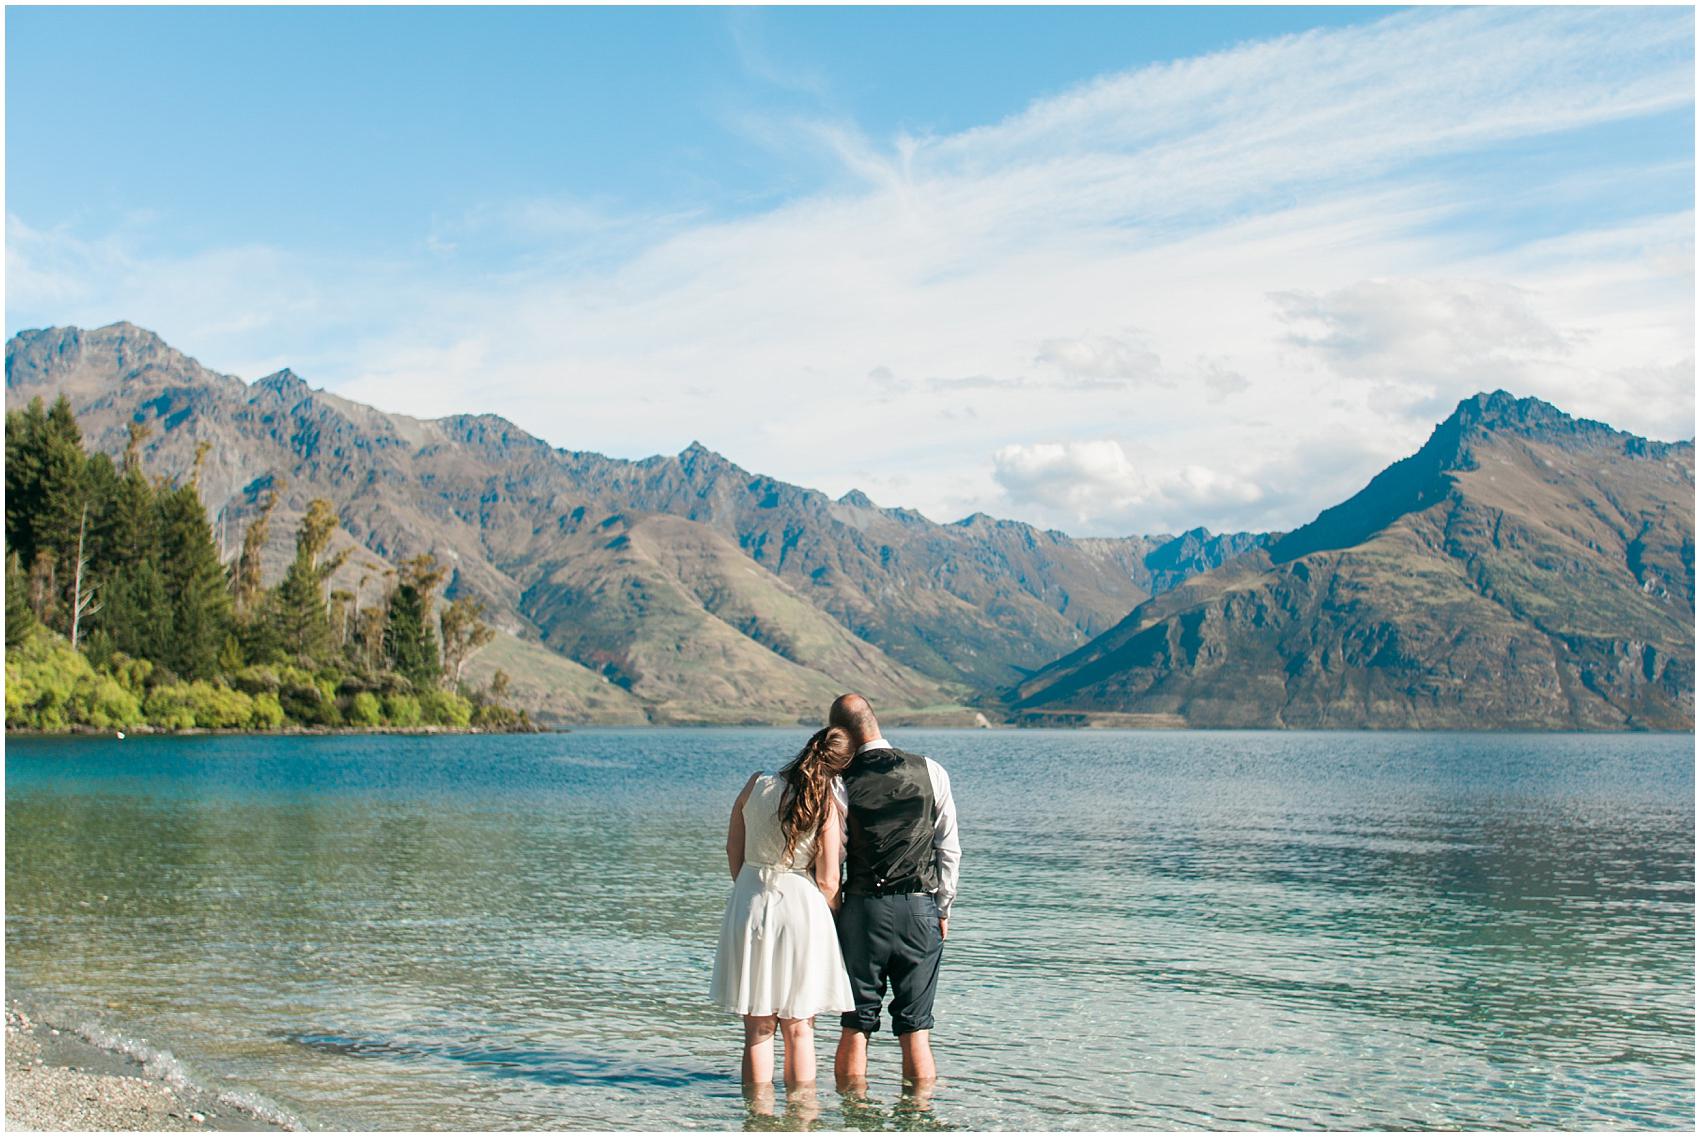 Queenstown New Zealand Wedding Photographer Bruna Fabricio Smetona Photo-0050.jpg